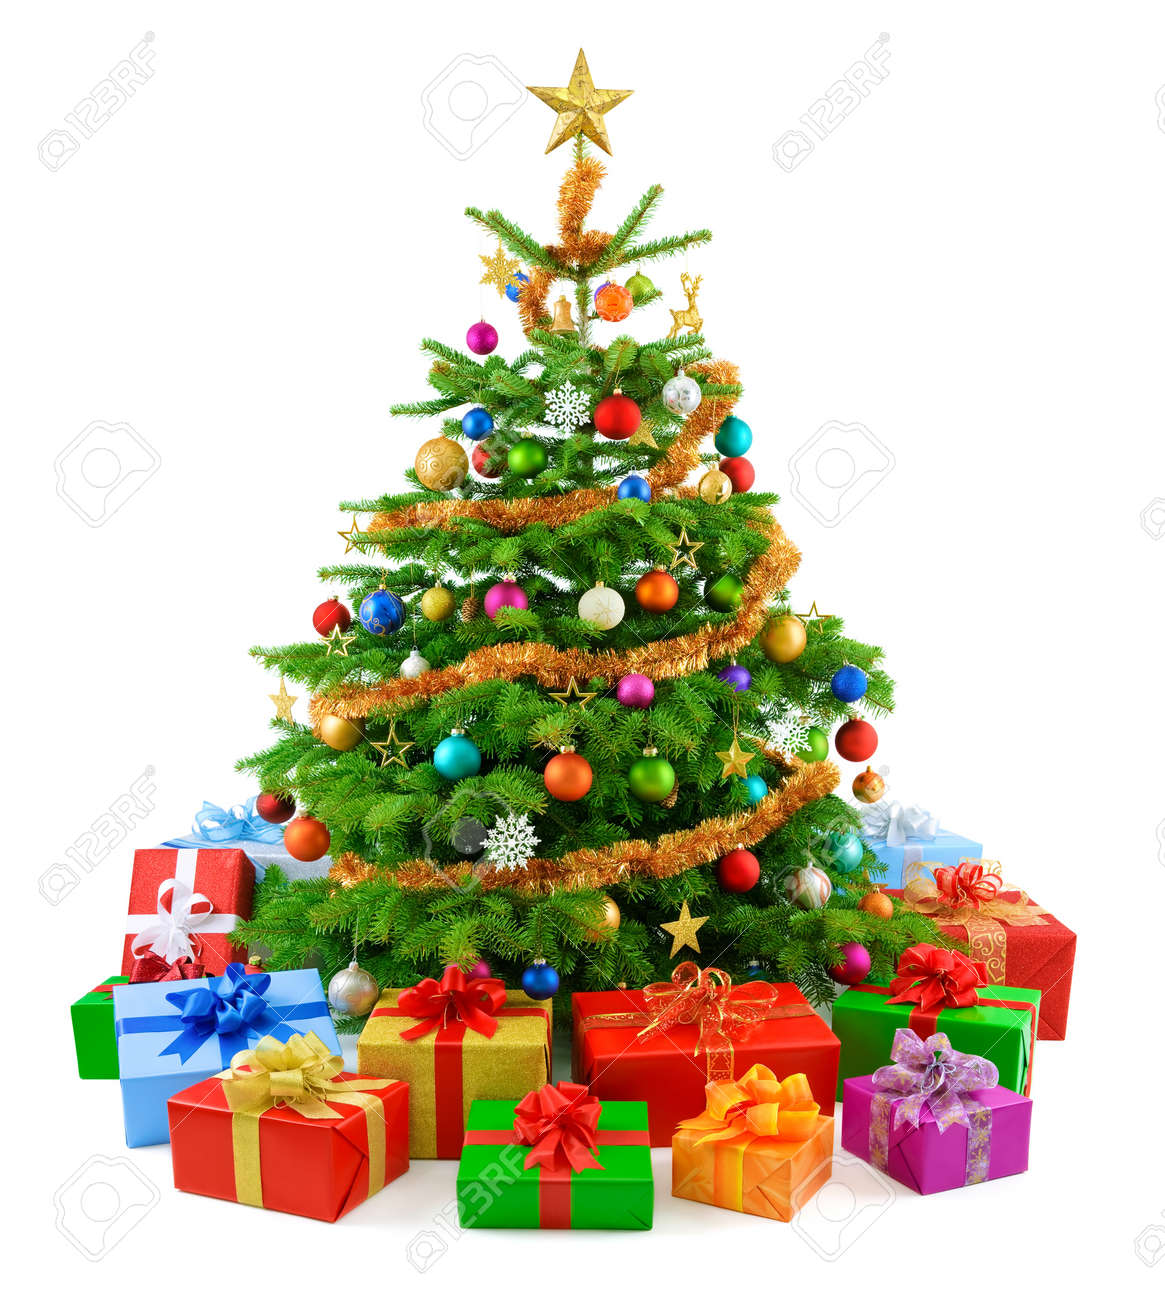 lush christmas tree with colorful gift boxes stock photo 10840622 - Christmas Tree Boxes